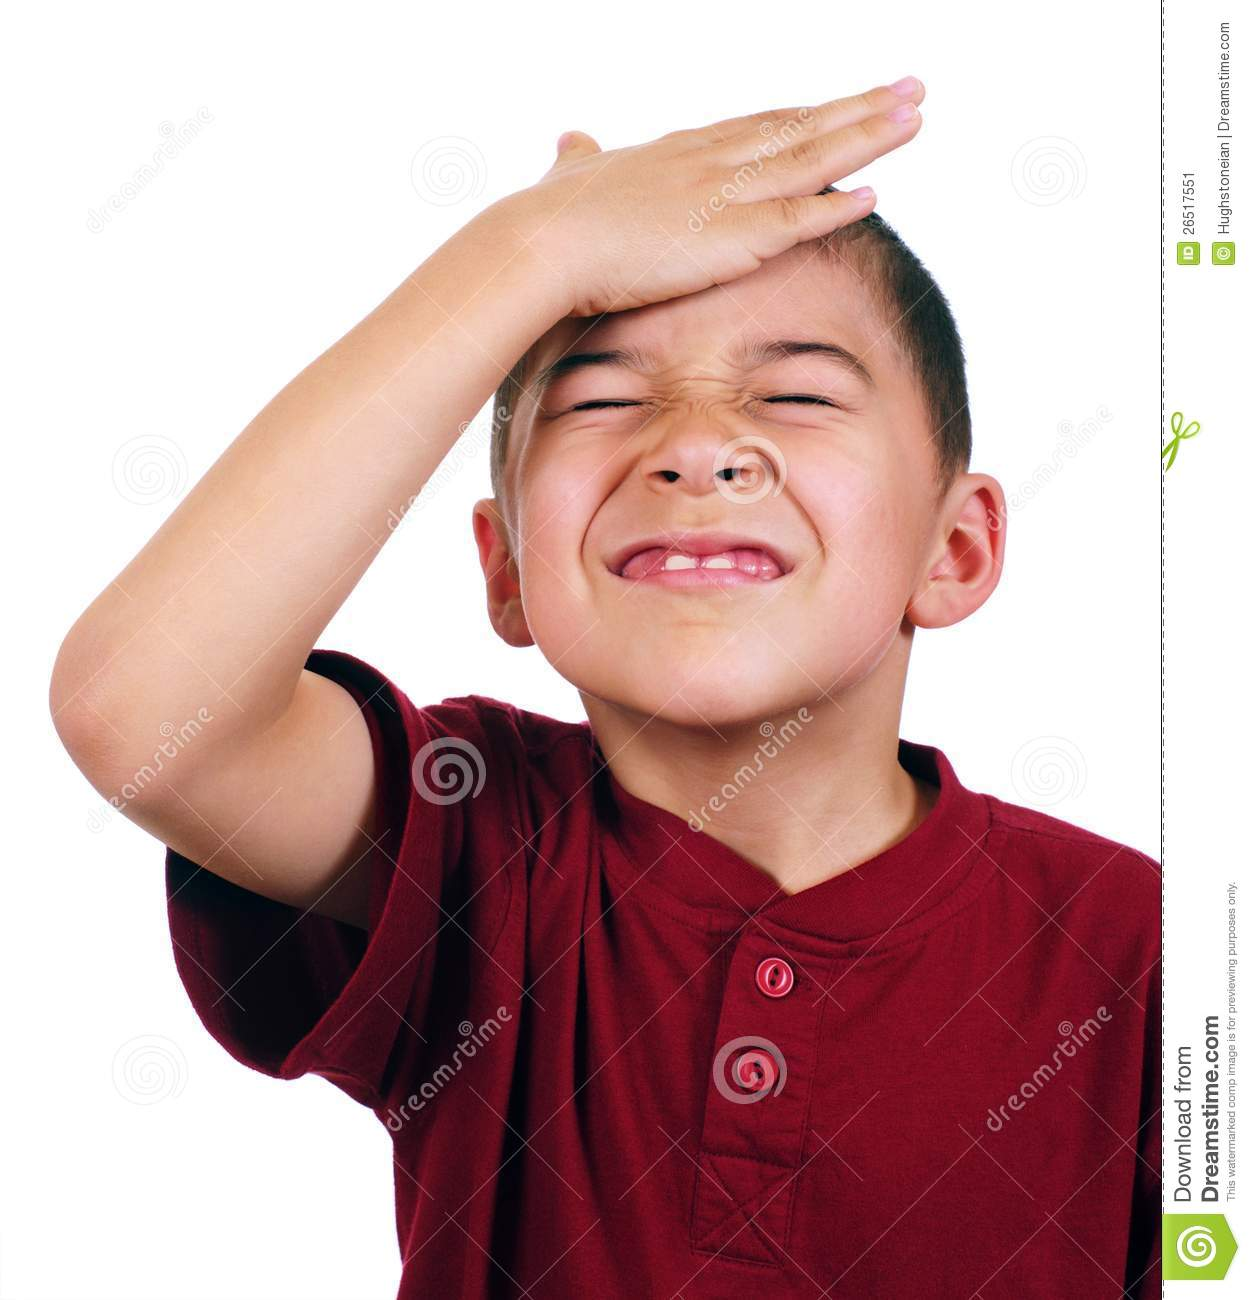 Kid Slaps Himself On Head, Oh-no Stock Image - Image: 26517551